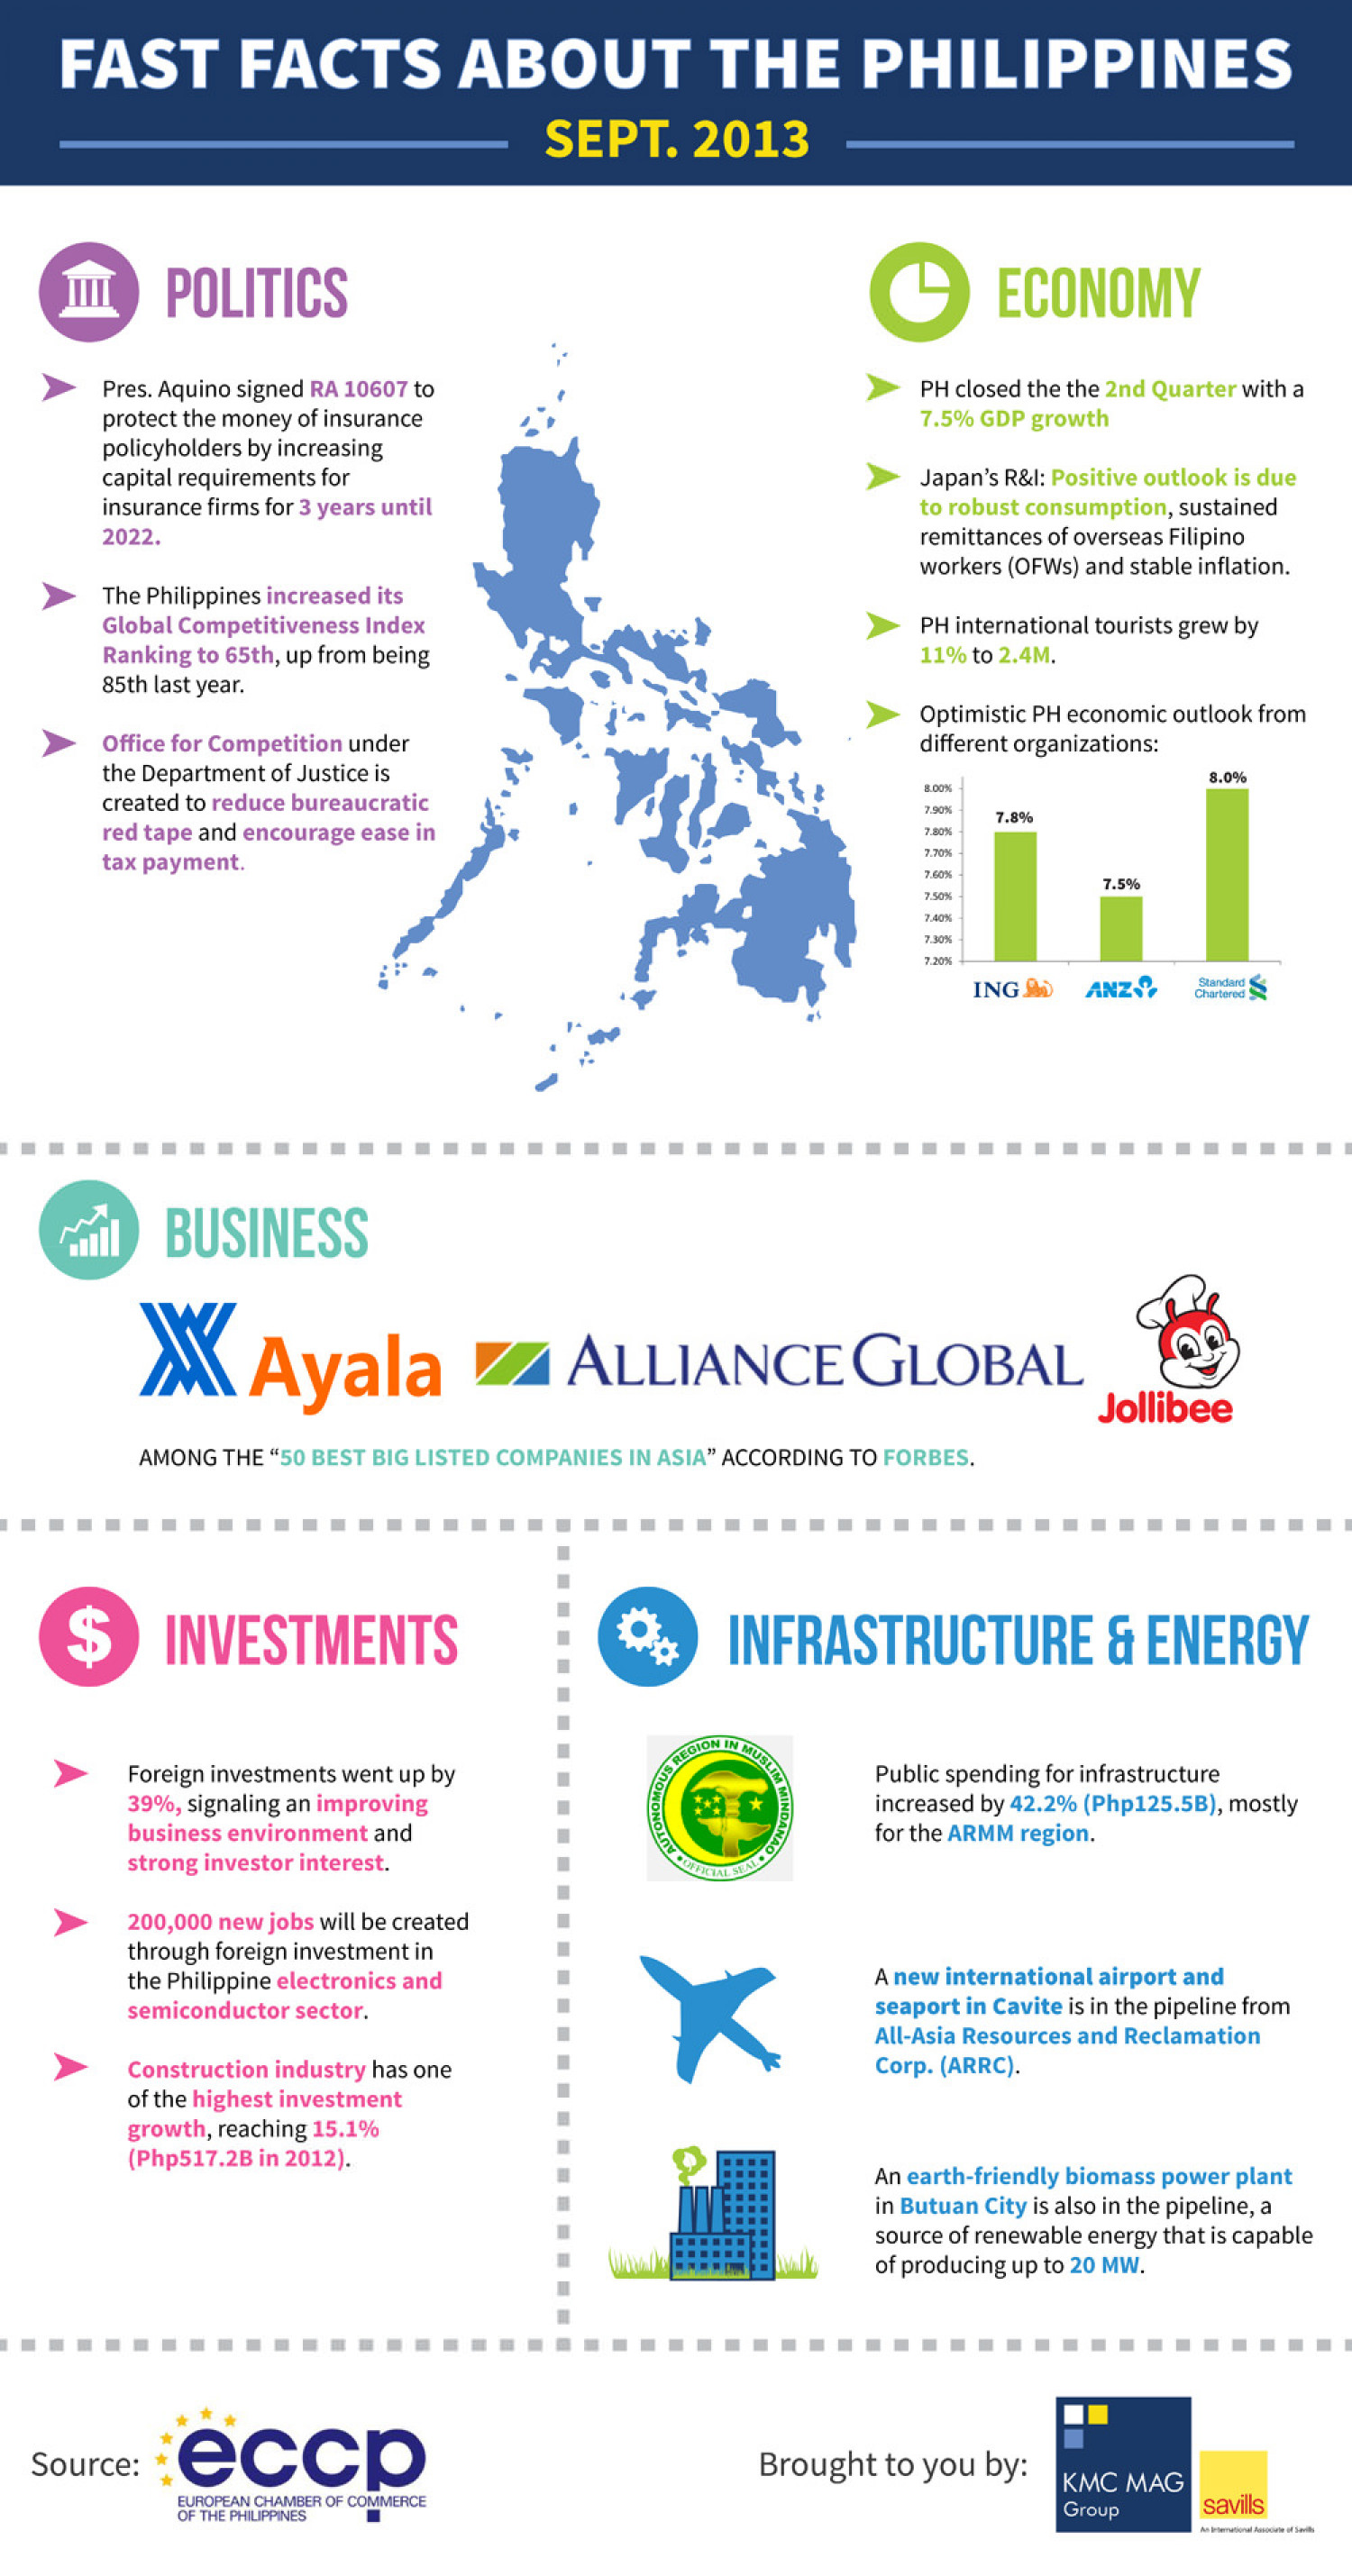 Fast Facts About the Philippines, Sept. 2013 Infographic